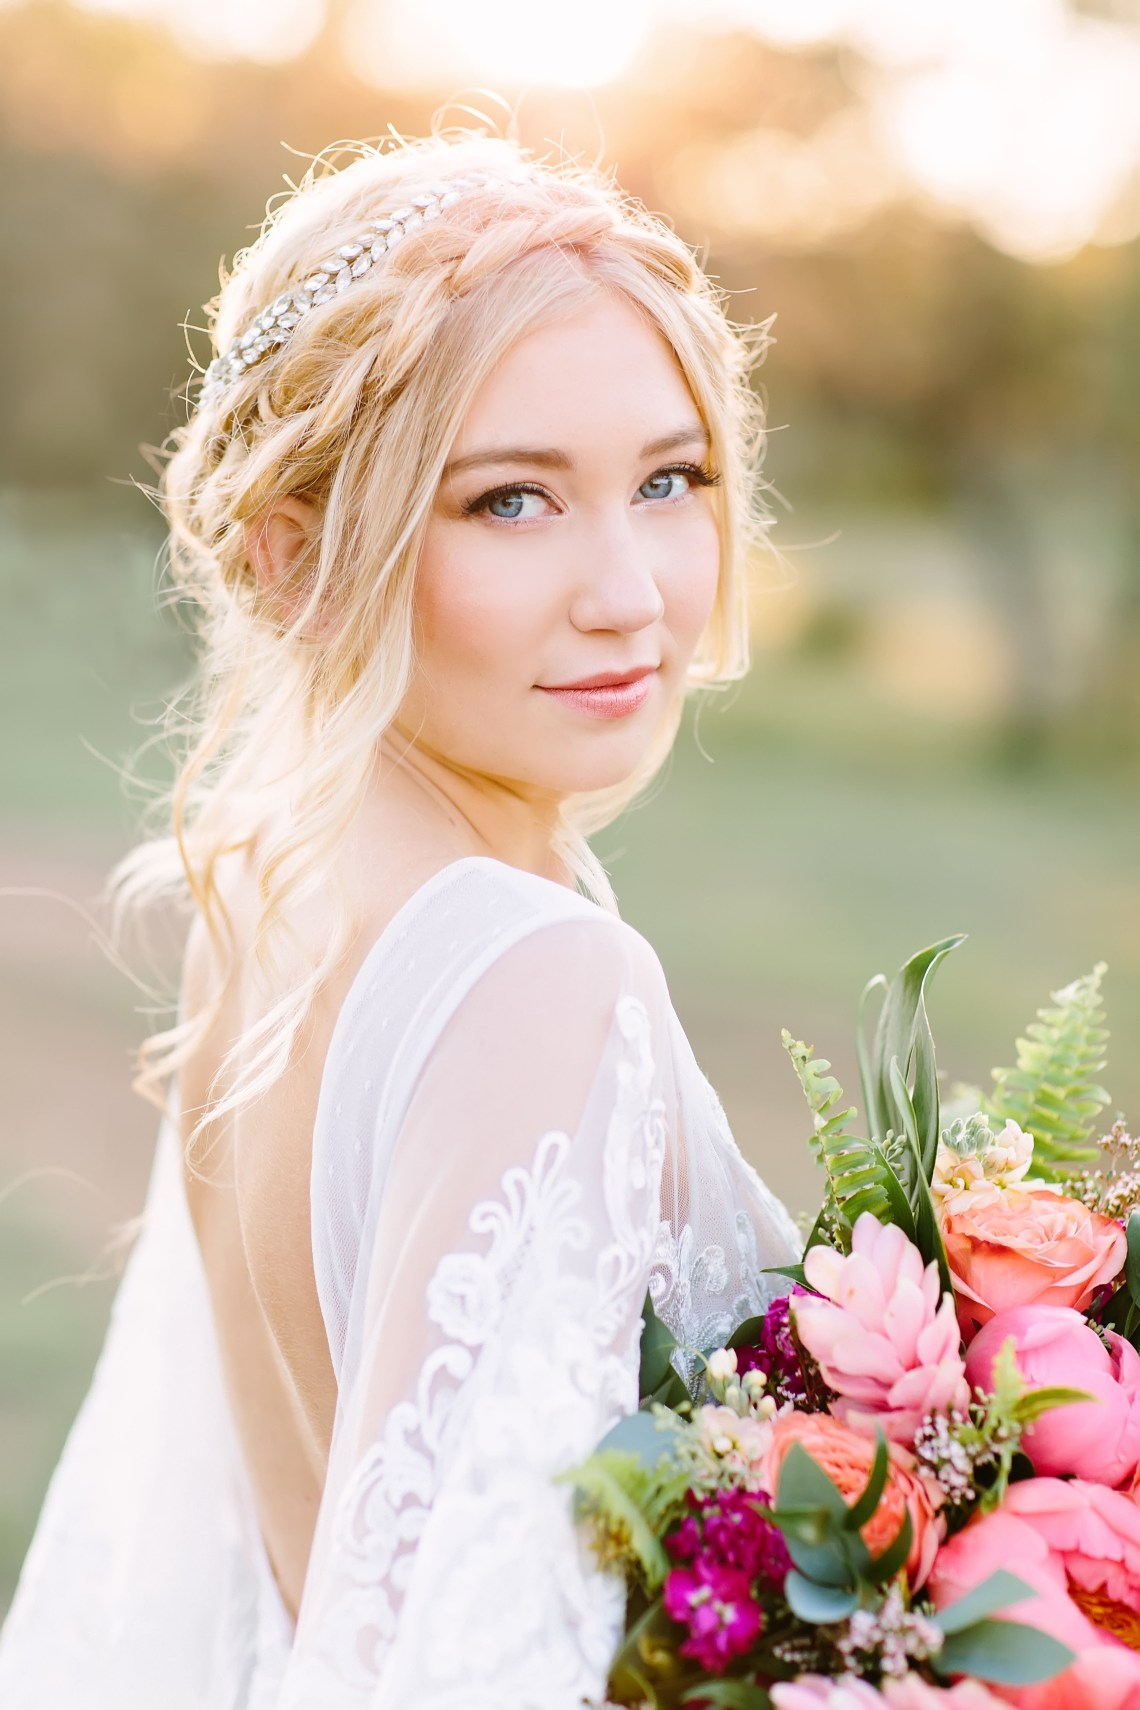 Austin wedding makeup, makeup artist, bridal makeup, boho makeup, boho wedding, austin makeup artist, texas wedding, Dripping springs, Memory Lane Event Center, wedding hair and makeup